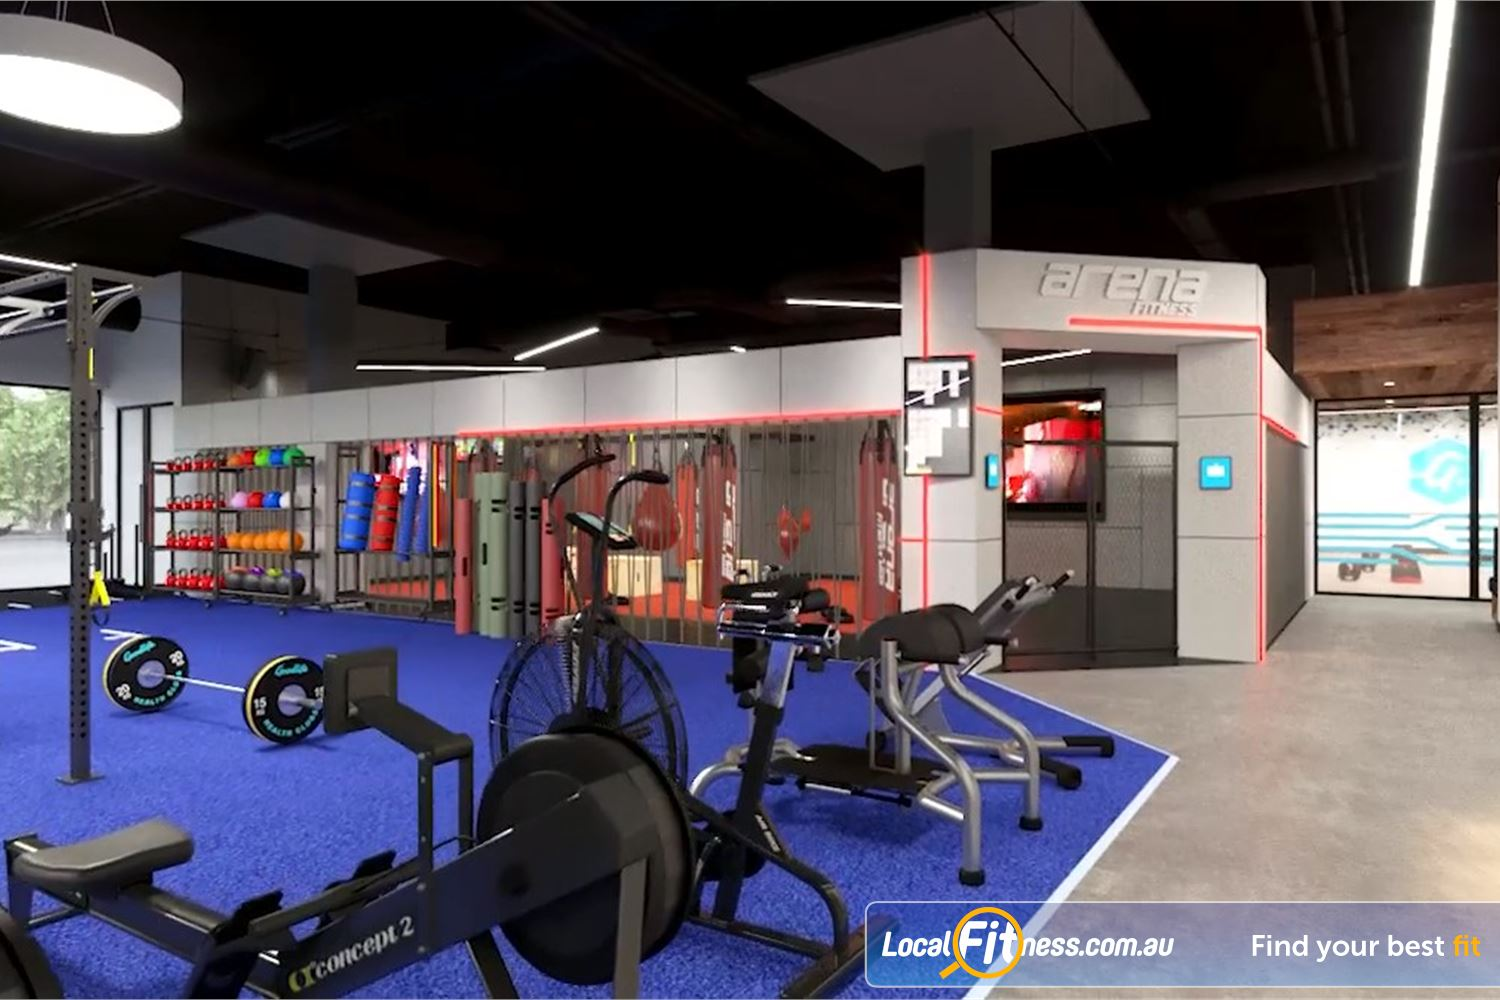 Goodlife Health Clubs Toowoomba The Arena Fitness MMA studio at Goodlife Toowoomba.<br /><br />